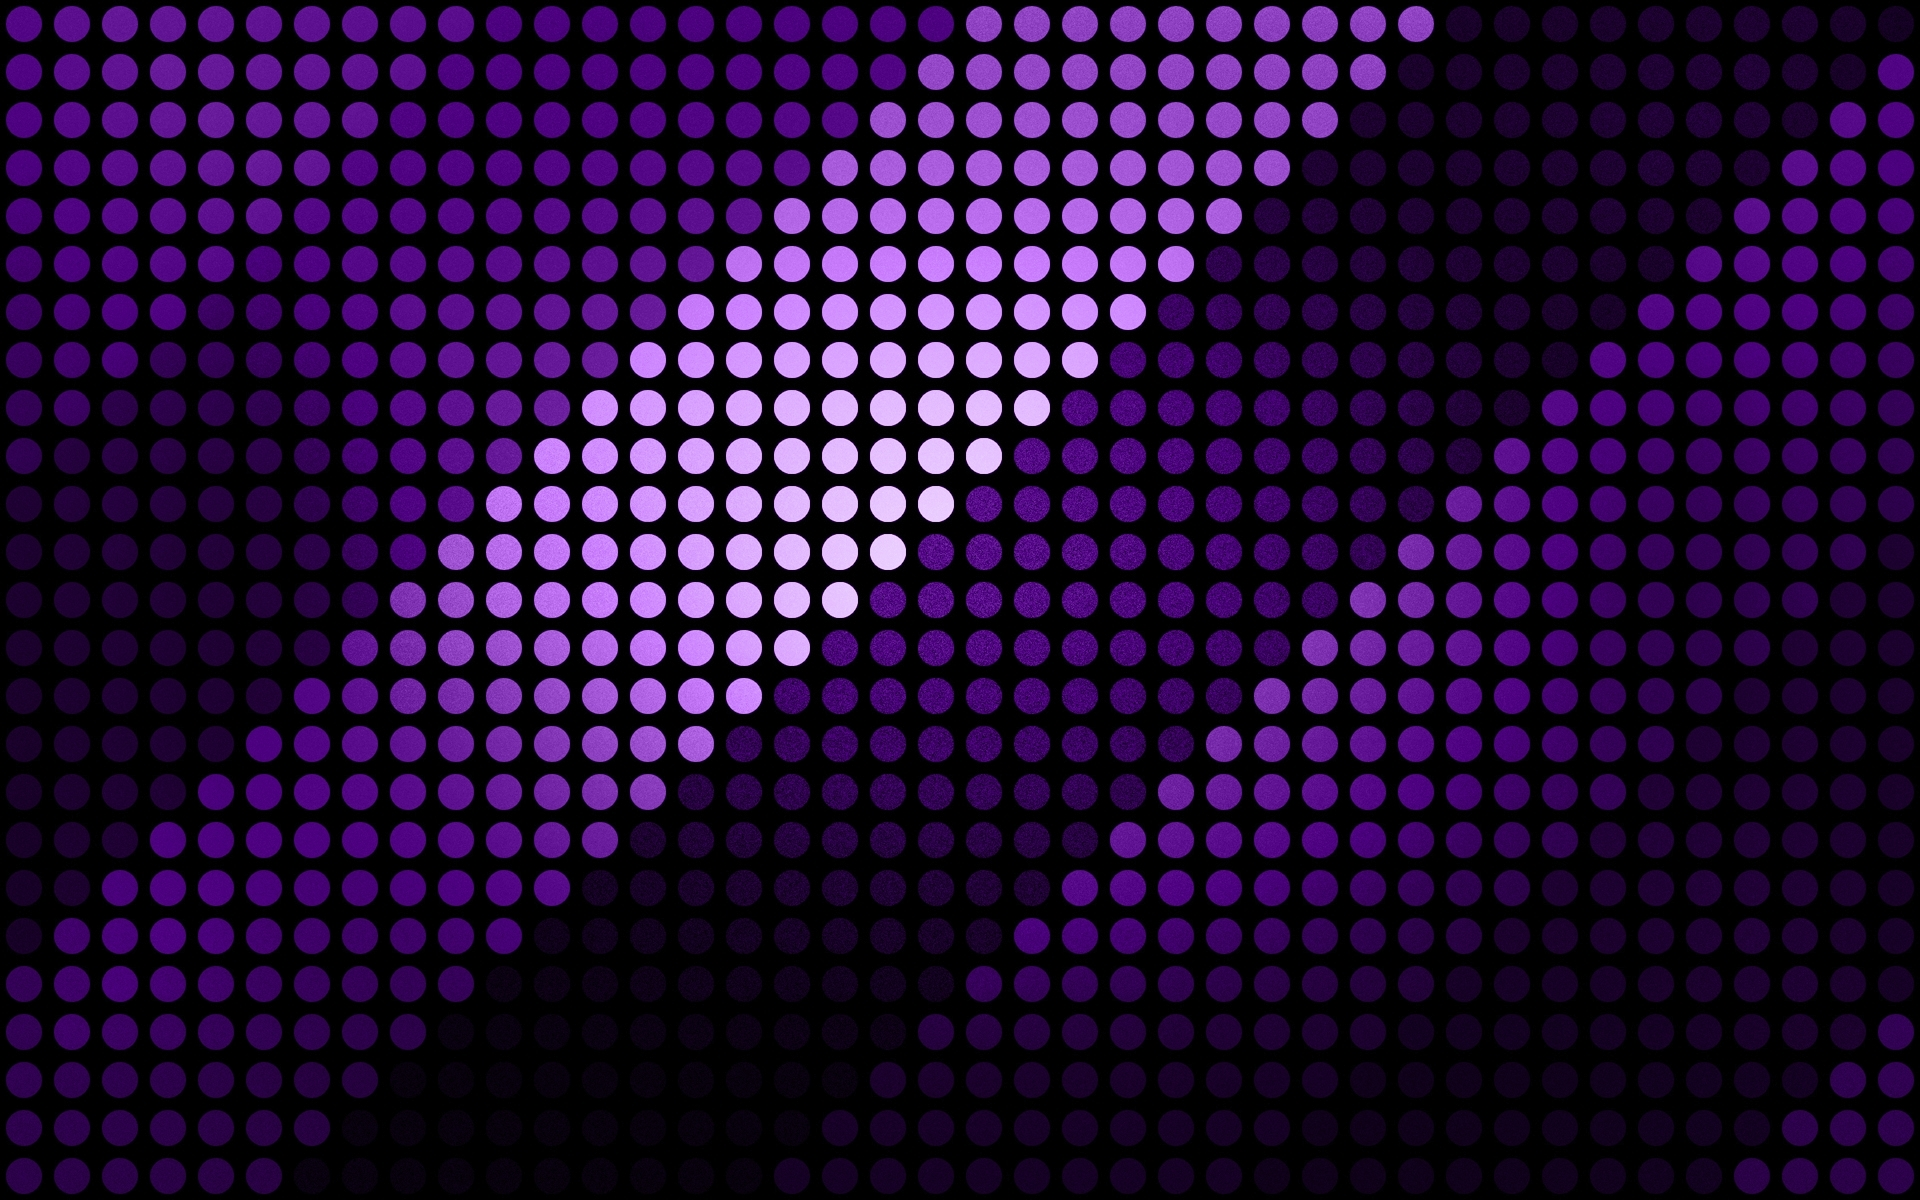 Purple Full HD Wallpaper And Background Image